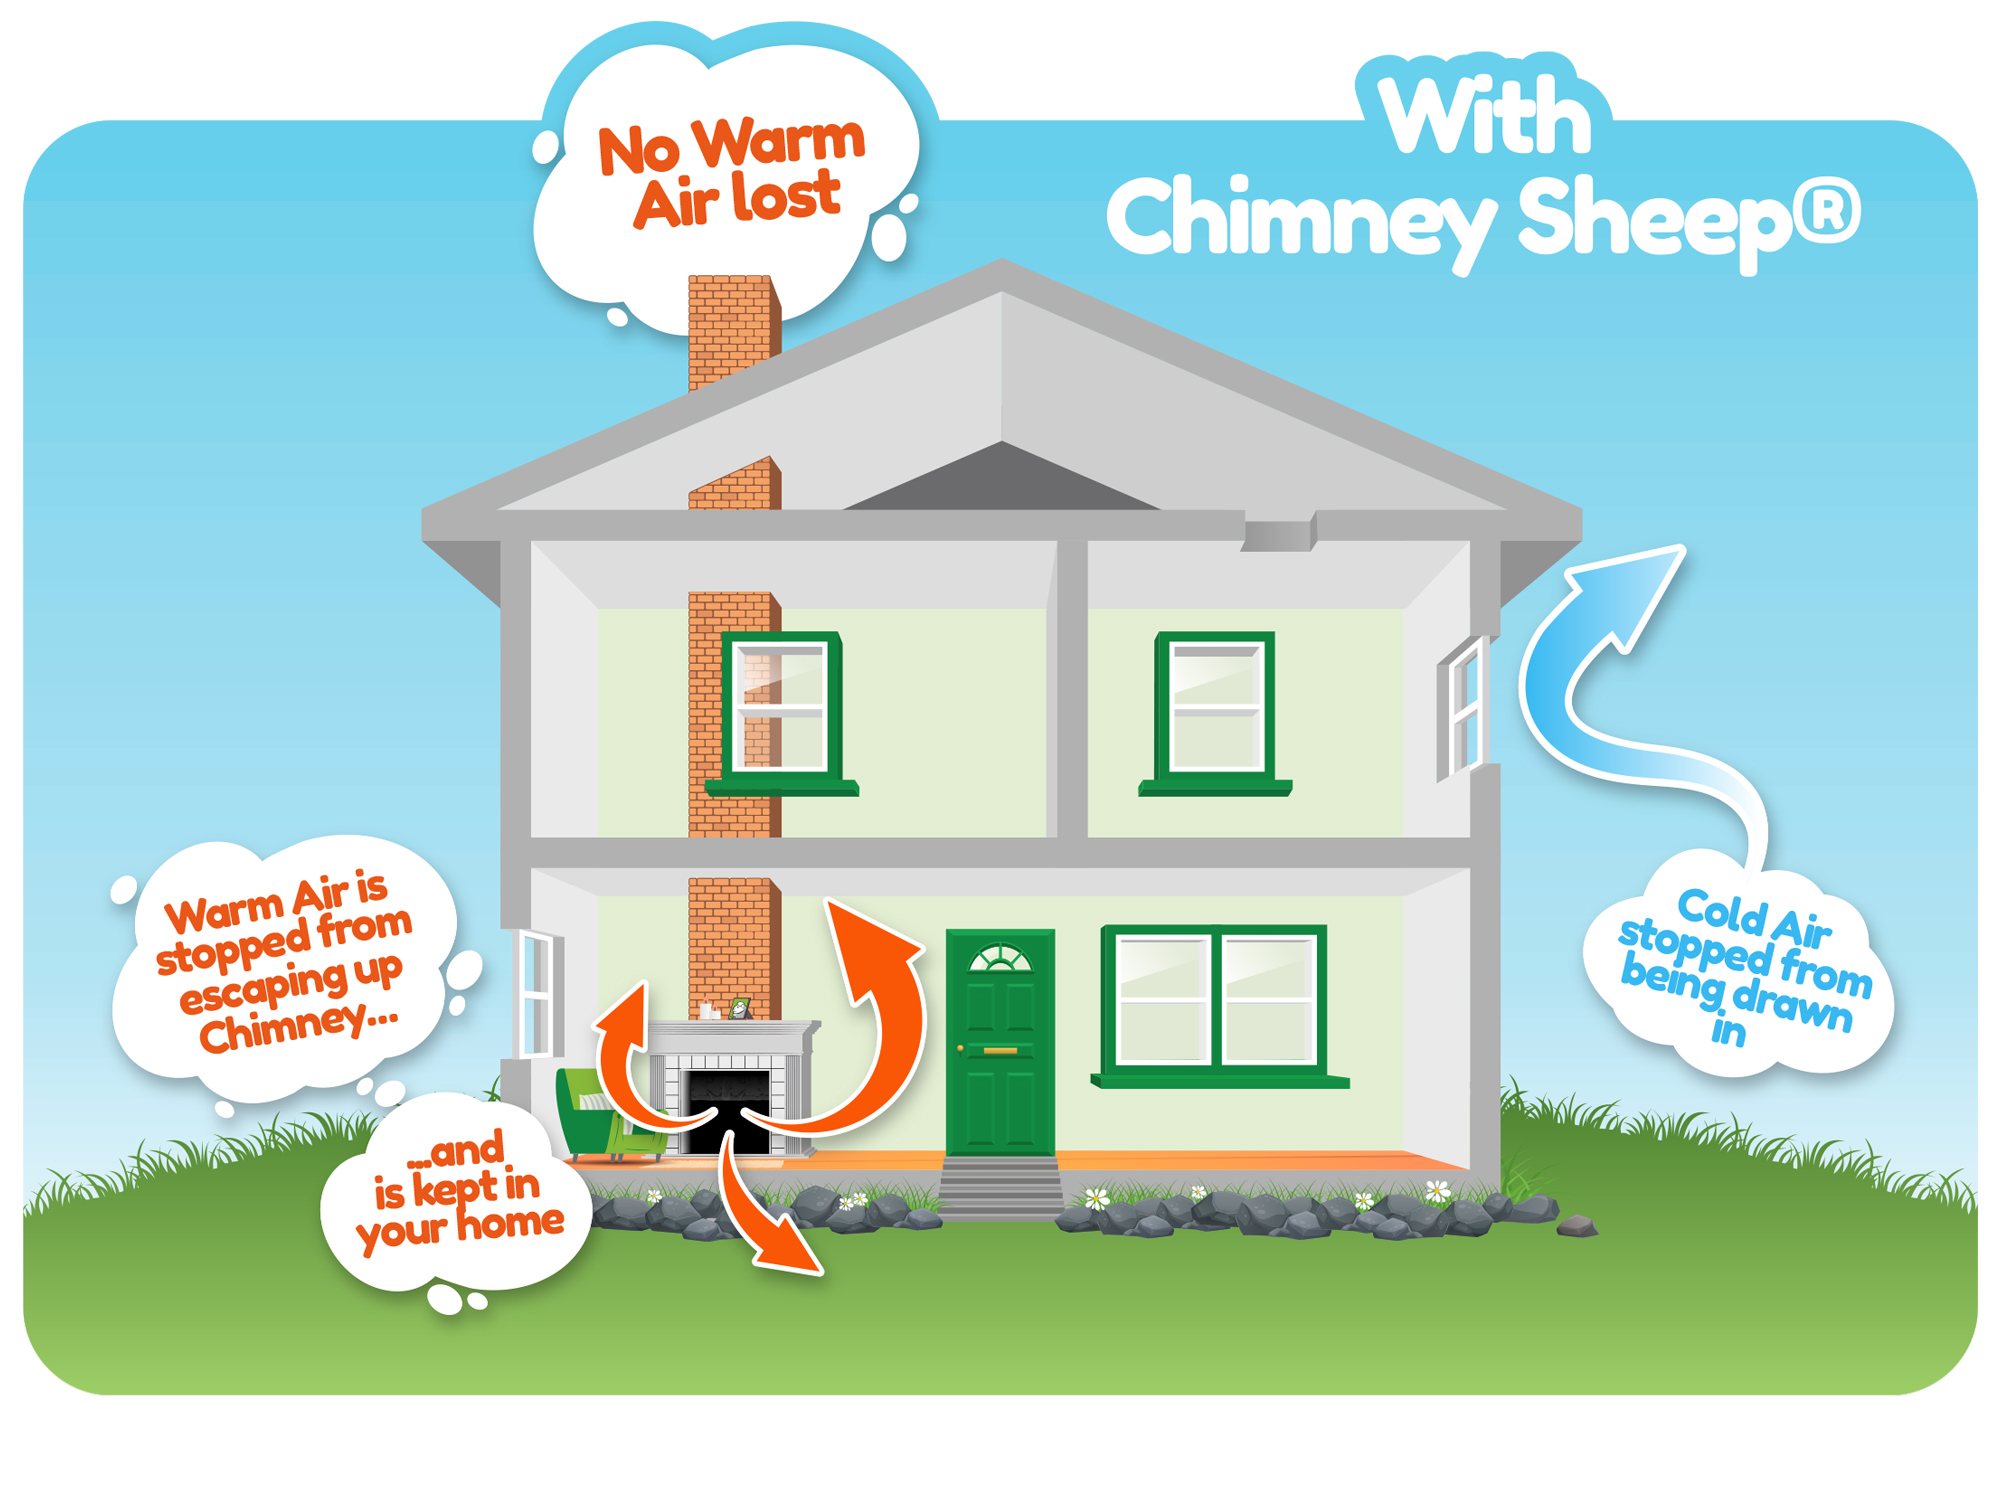 With Chimney Sheep